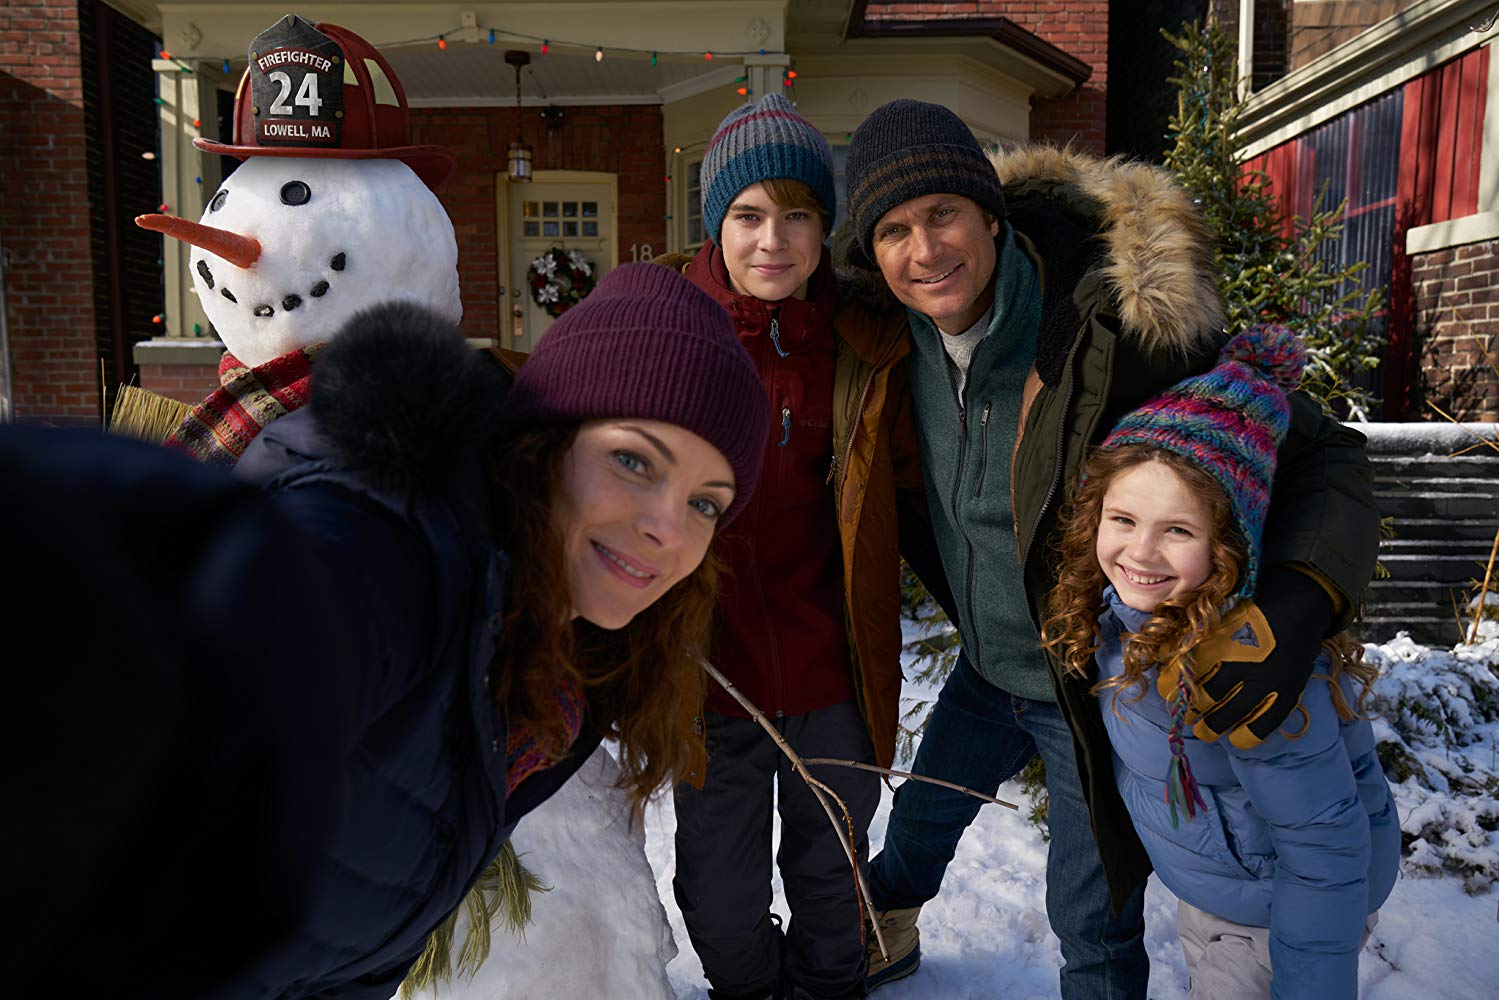 A Christmas Chronicles.A Review Of Netflix Original Movie The Christmas Chronicles